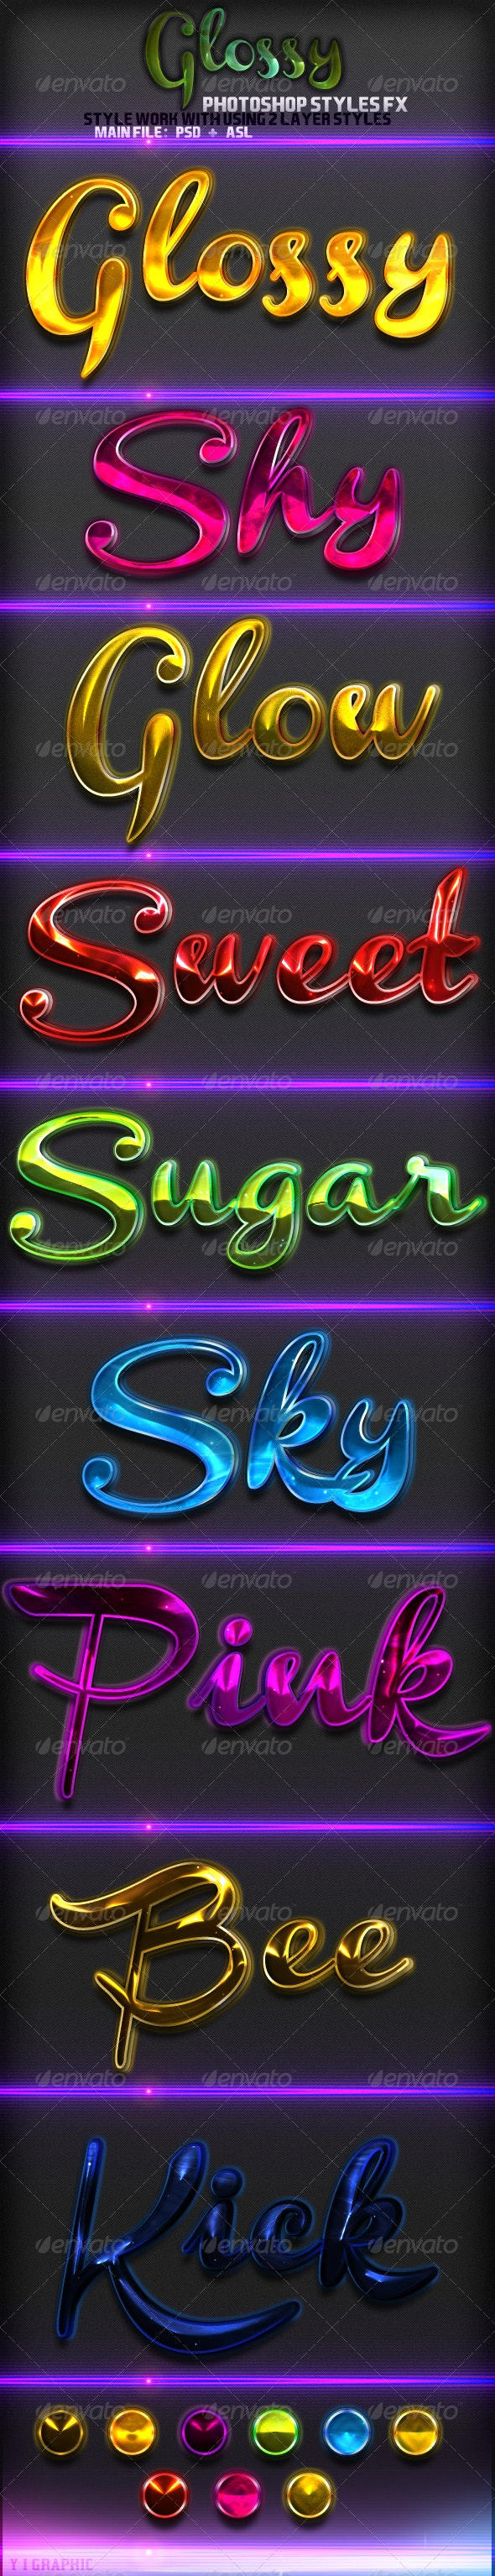 9  Glossy Styles - Text Effects Styles